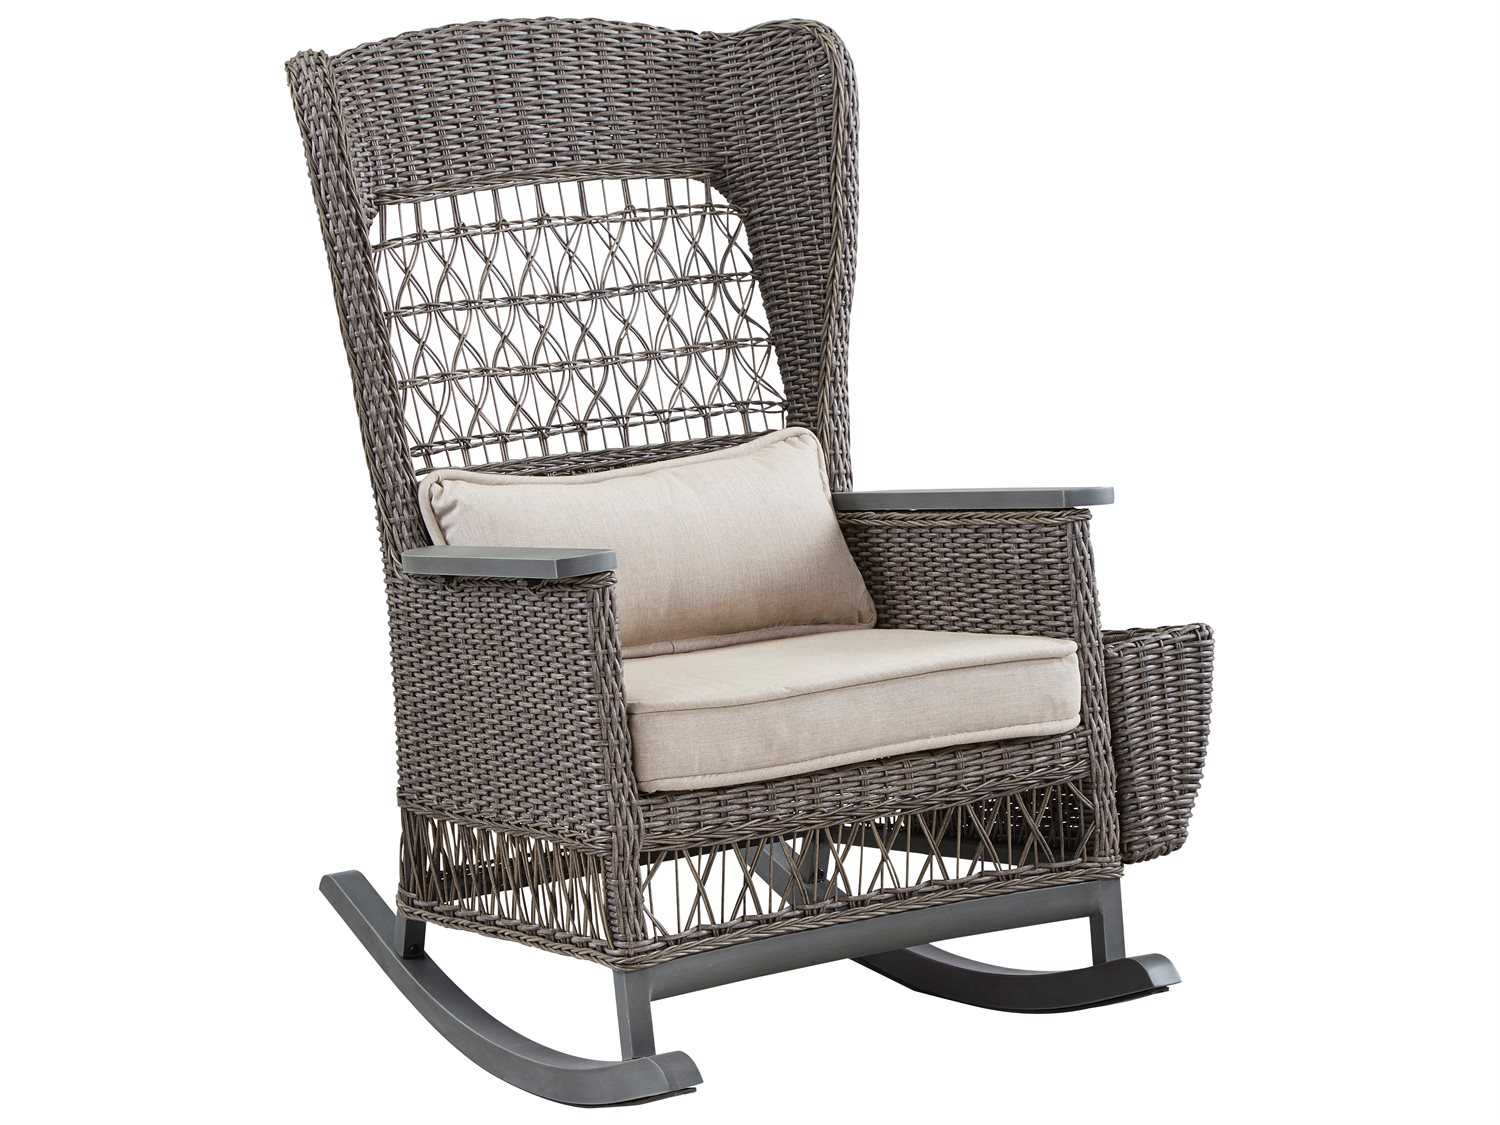 Indoor Wicker Rocking Chair Furniture Outdoor Wicker Swivel Chair Indoor Glider